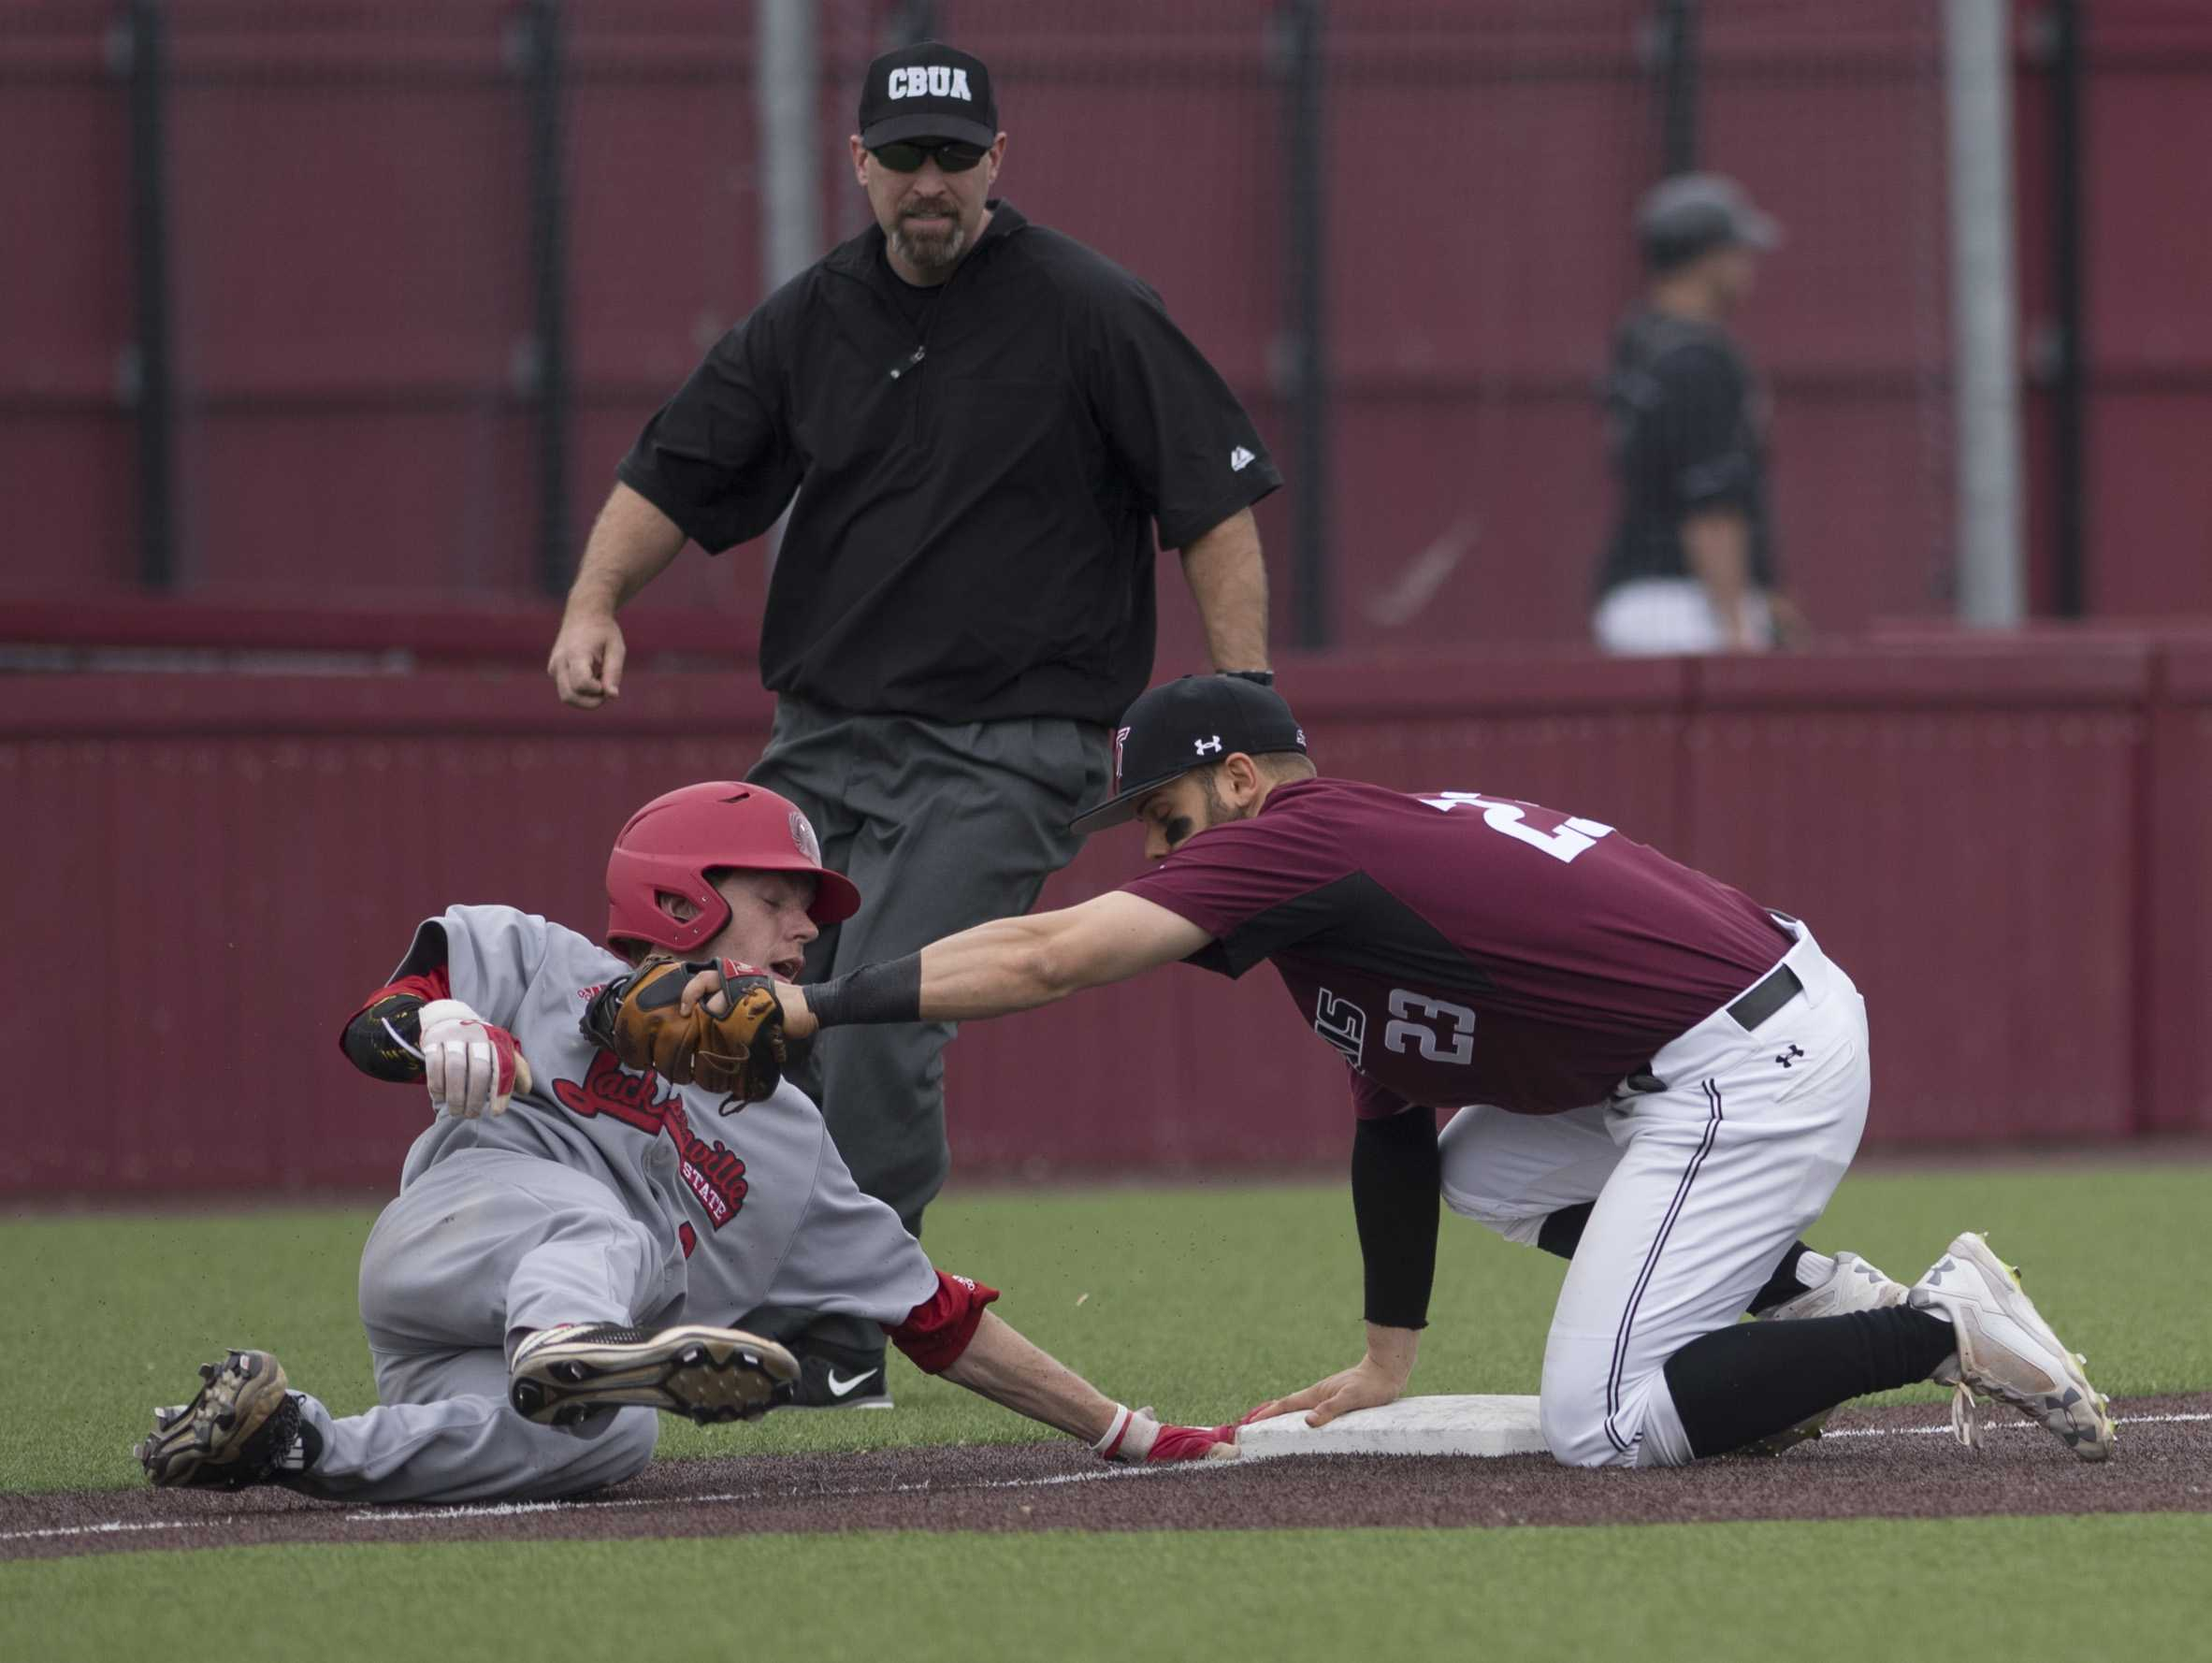 Gamecock junior infielder Taylor Hawthorne attempts to slide back to safety Friday, March 24, 2017, as Saluki senior infielder Ryan Sabo holds the ball at third base. The umpire called Hawthorne out. Jacksonville State went on to beat SIU 8-6 during the first of a three-game series at Itchy Jones Stadium. (Bill Lukitsch | @lukitsbill)